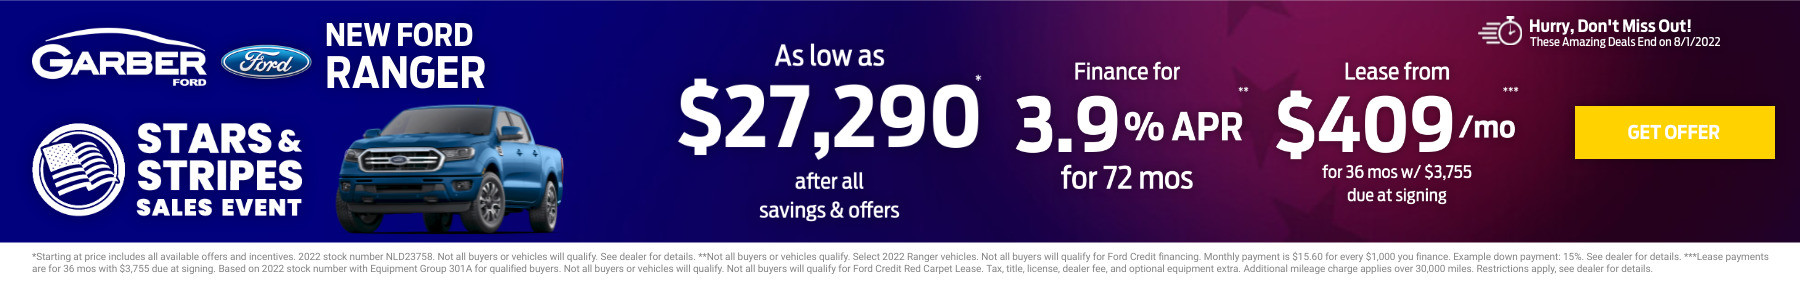 New Ford Ranger Current Deals and Offers in Orange Park, FL